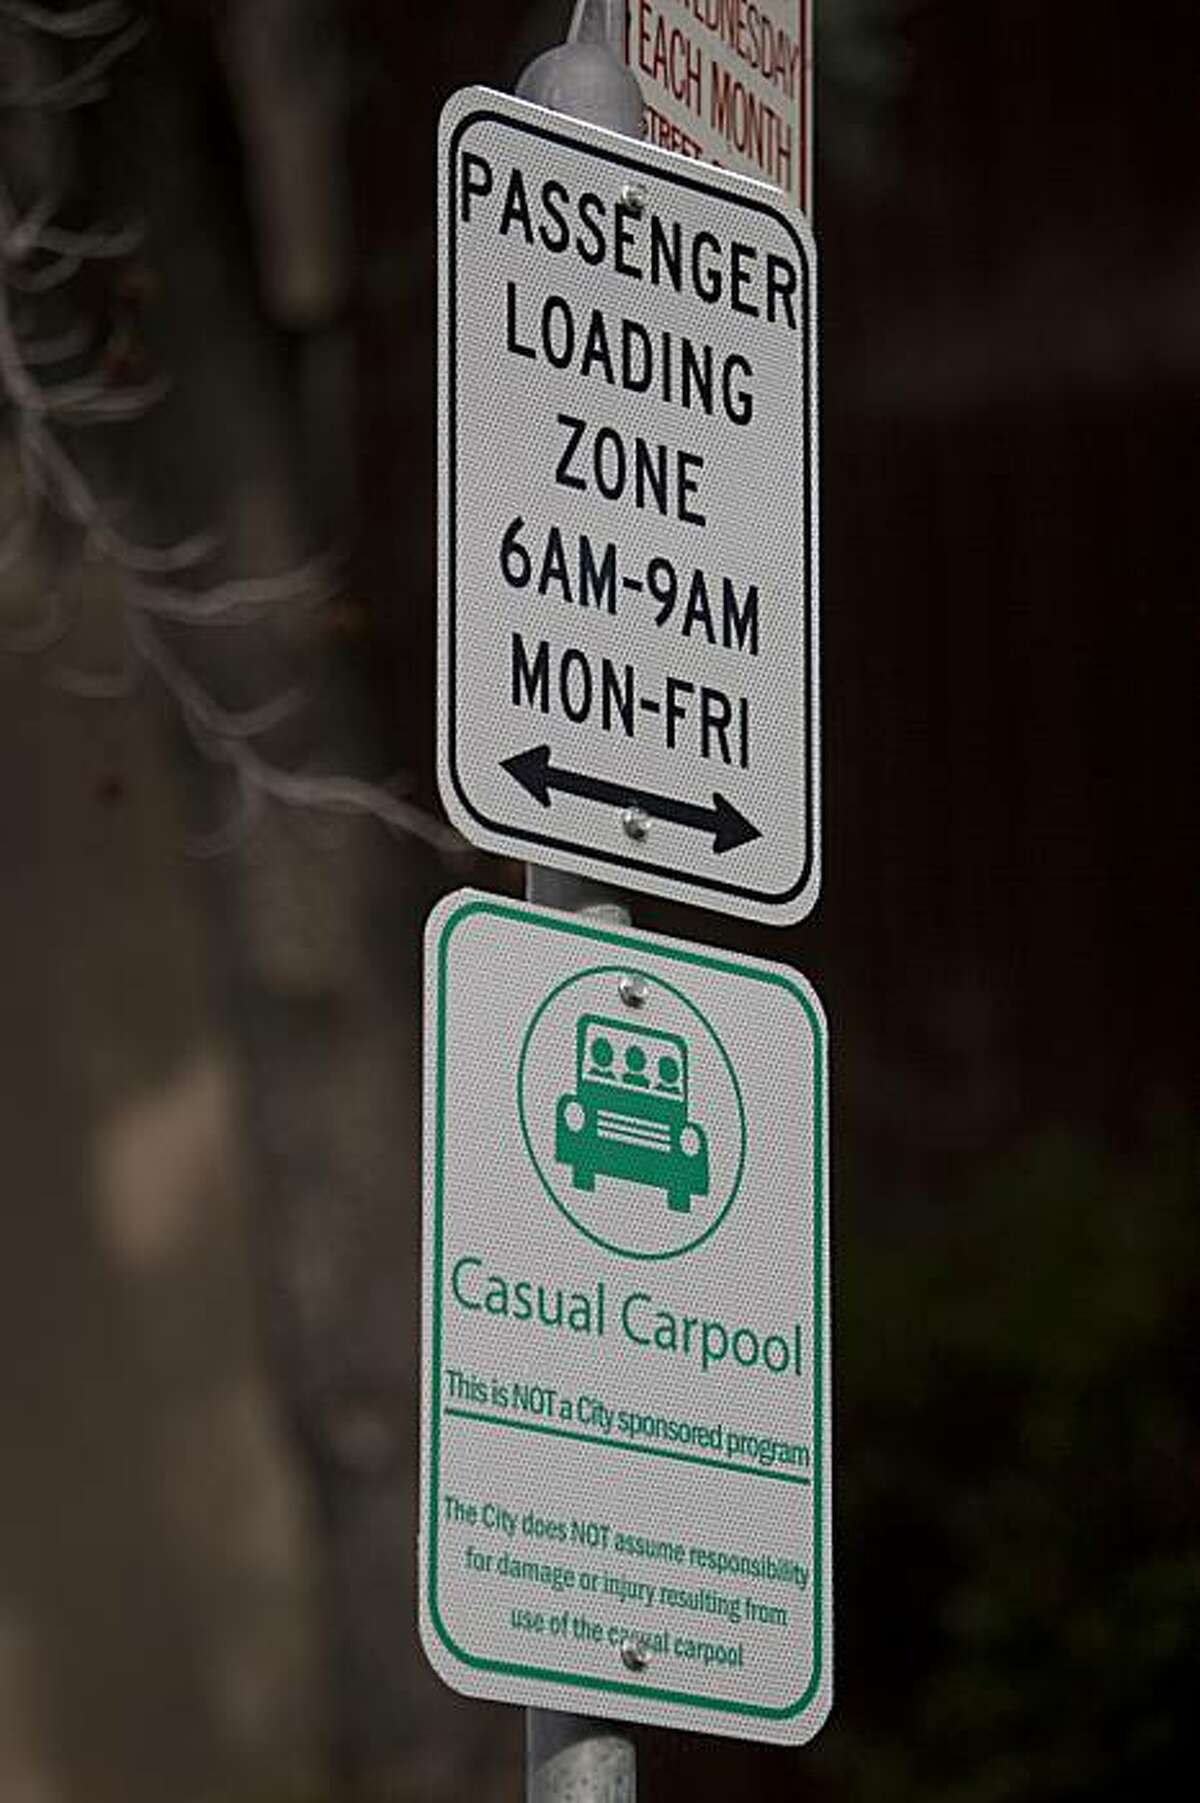 The sign for the Casual Carpool Commuter pick up point located at Oakland Avenue and Monte Vista Avenue on Thursday February 11, 2010 in Oakland, Calif. Photograph by David Paul Morris / Special to the Chronicle